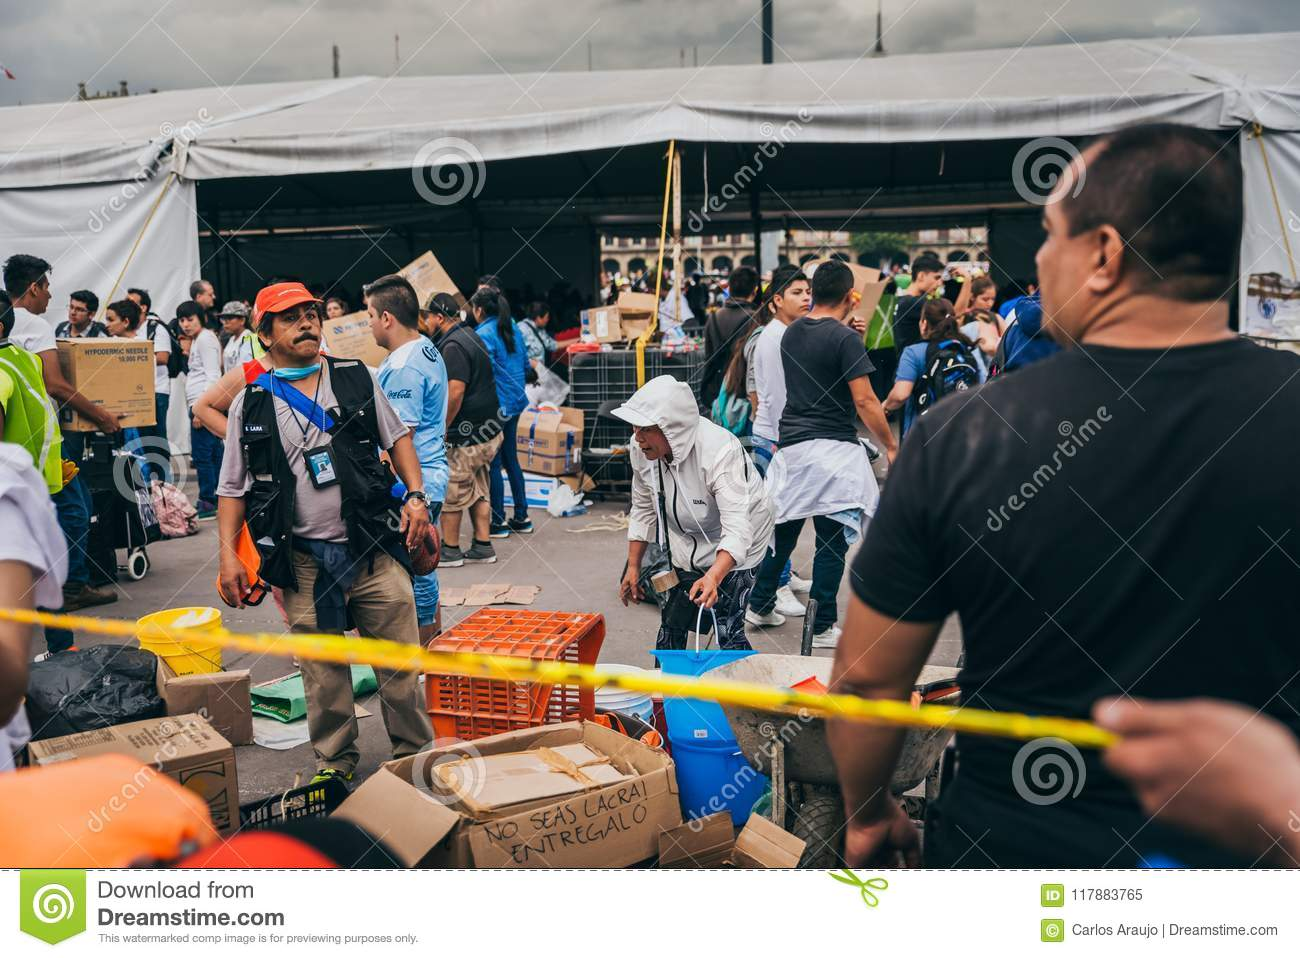 MEXICO - SEPTEMBER 20: People volunteering at a collection center to gather provisions and supplies for the earthquake victims